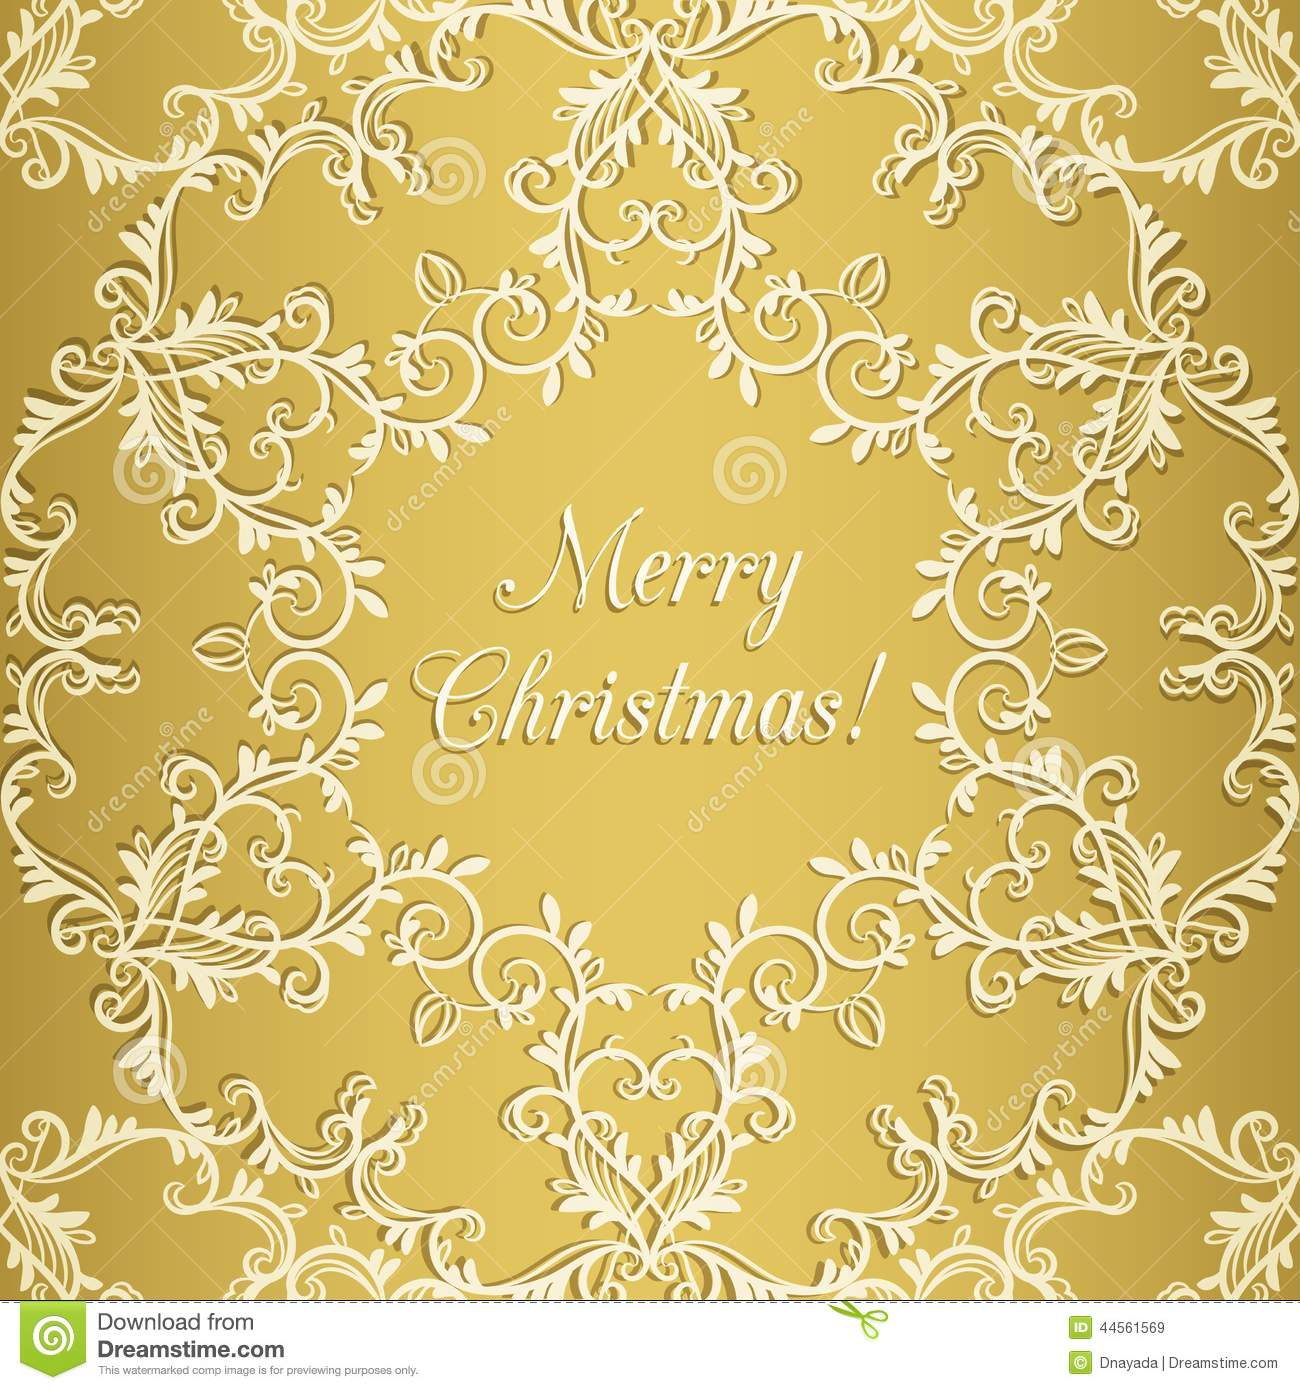 Christmas Greeting Card With Snowflake, Gold Stock Vector